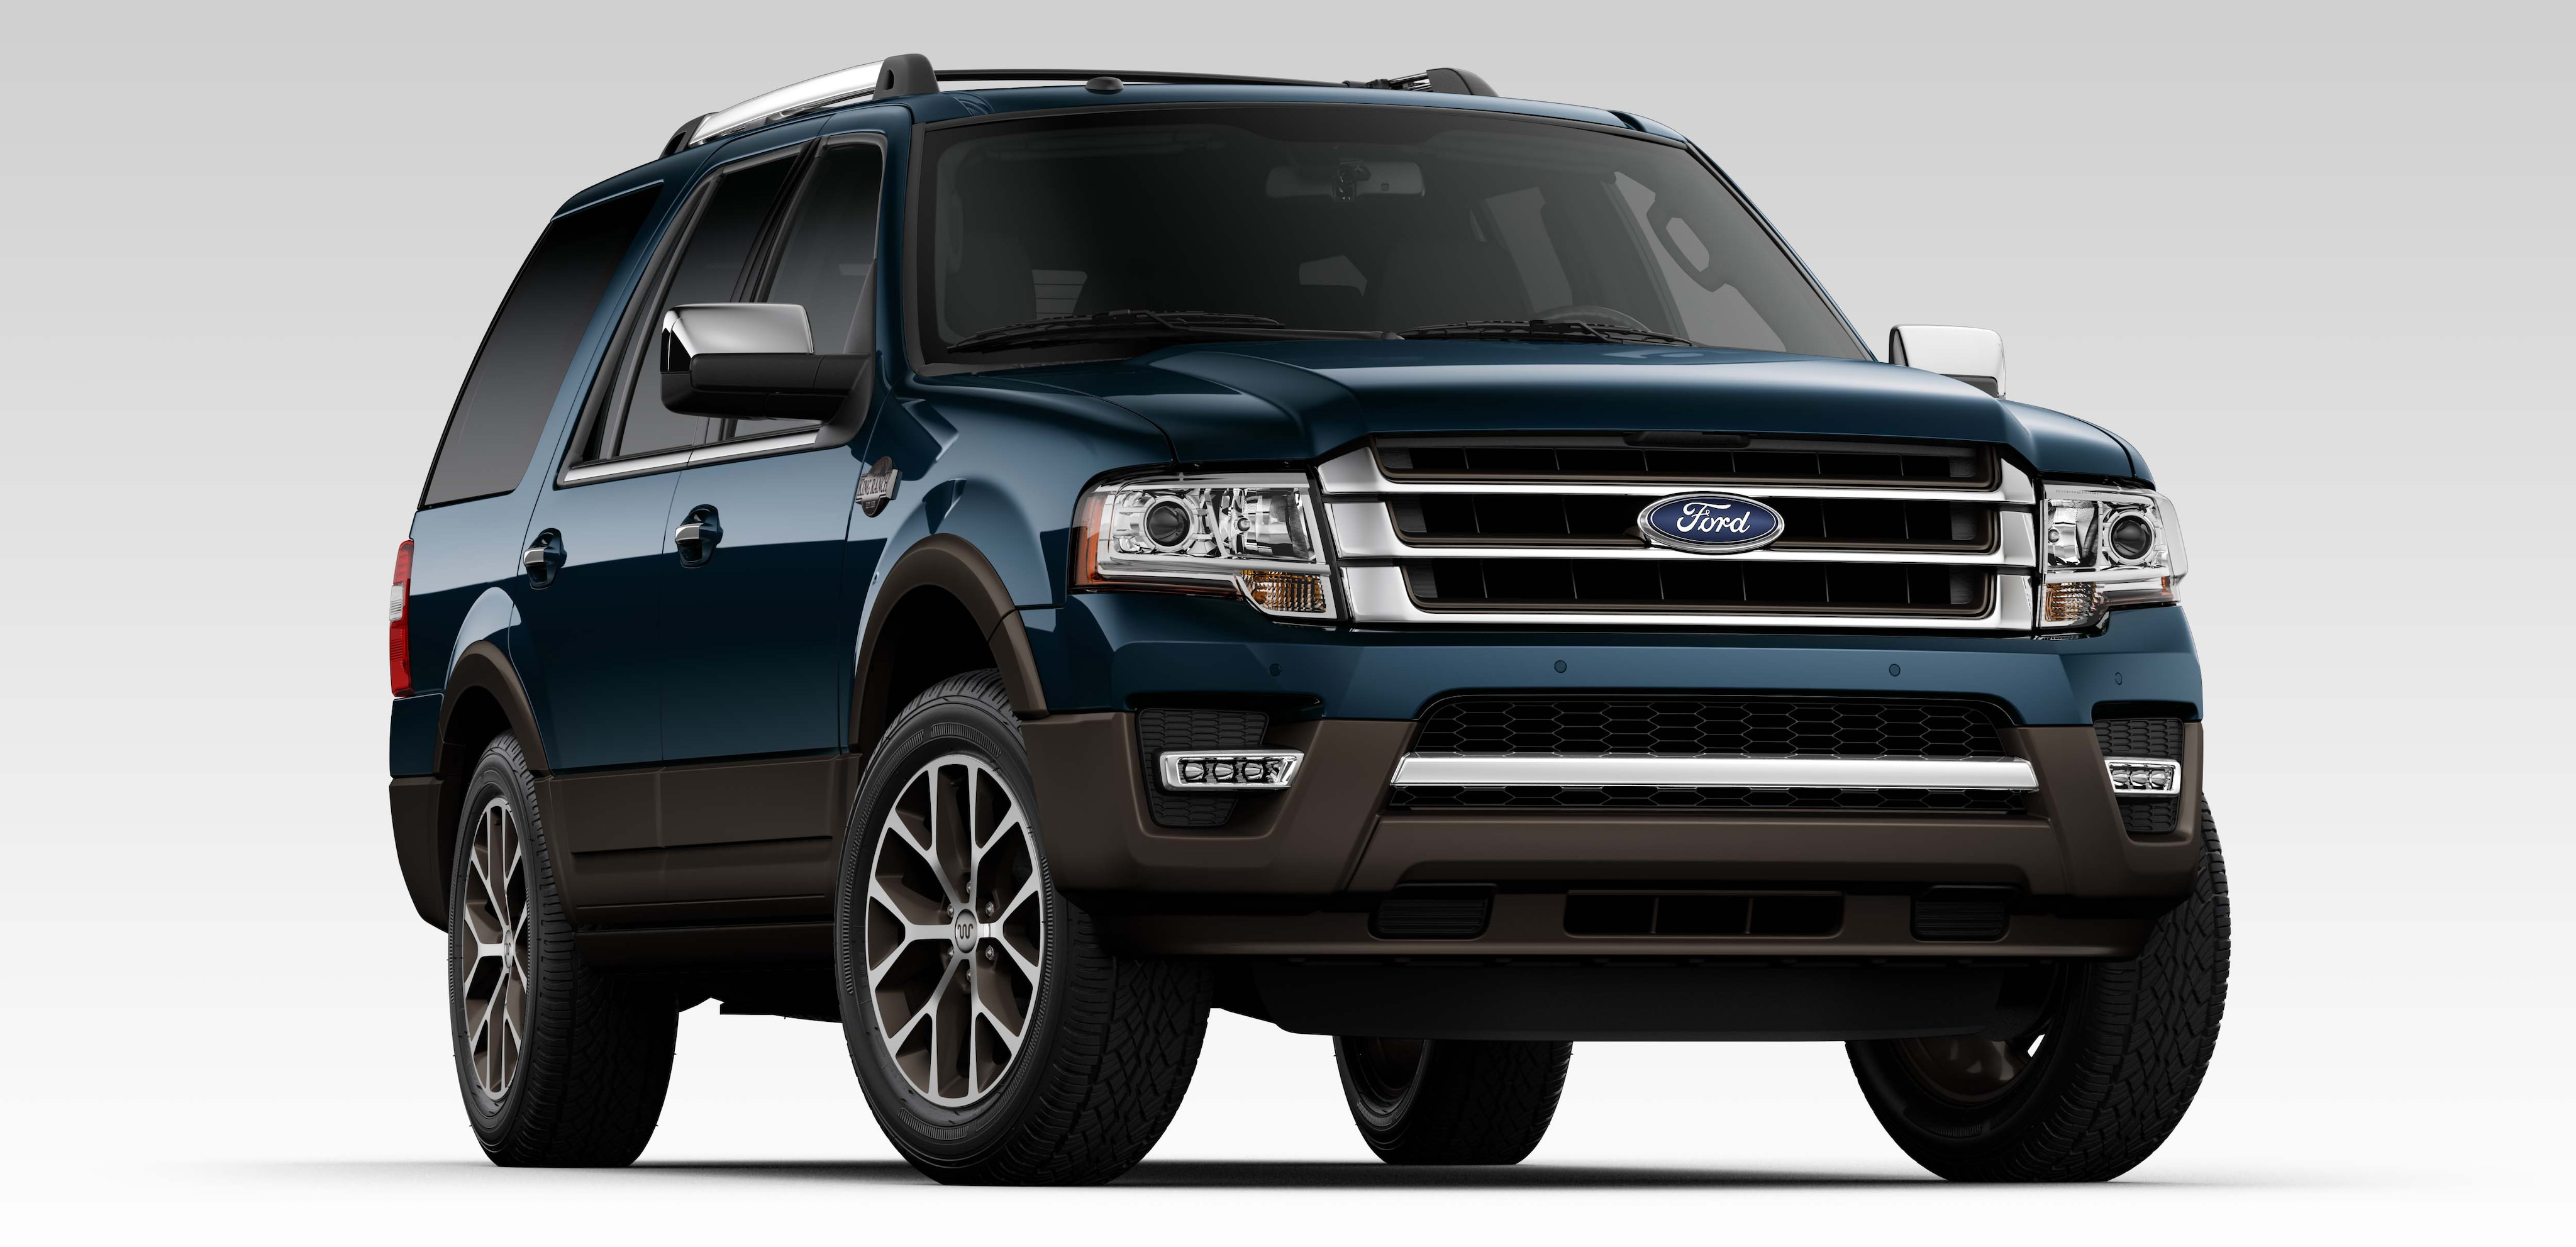 The 2017 ford expedition is ready to satisfy your every automotive need